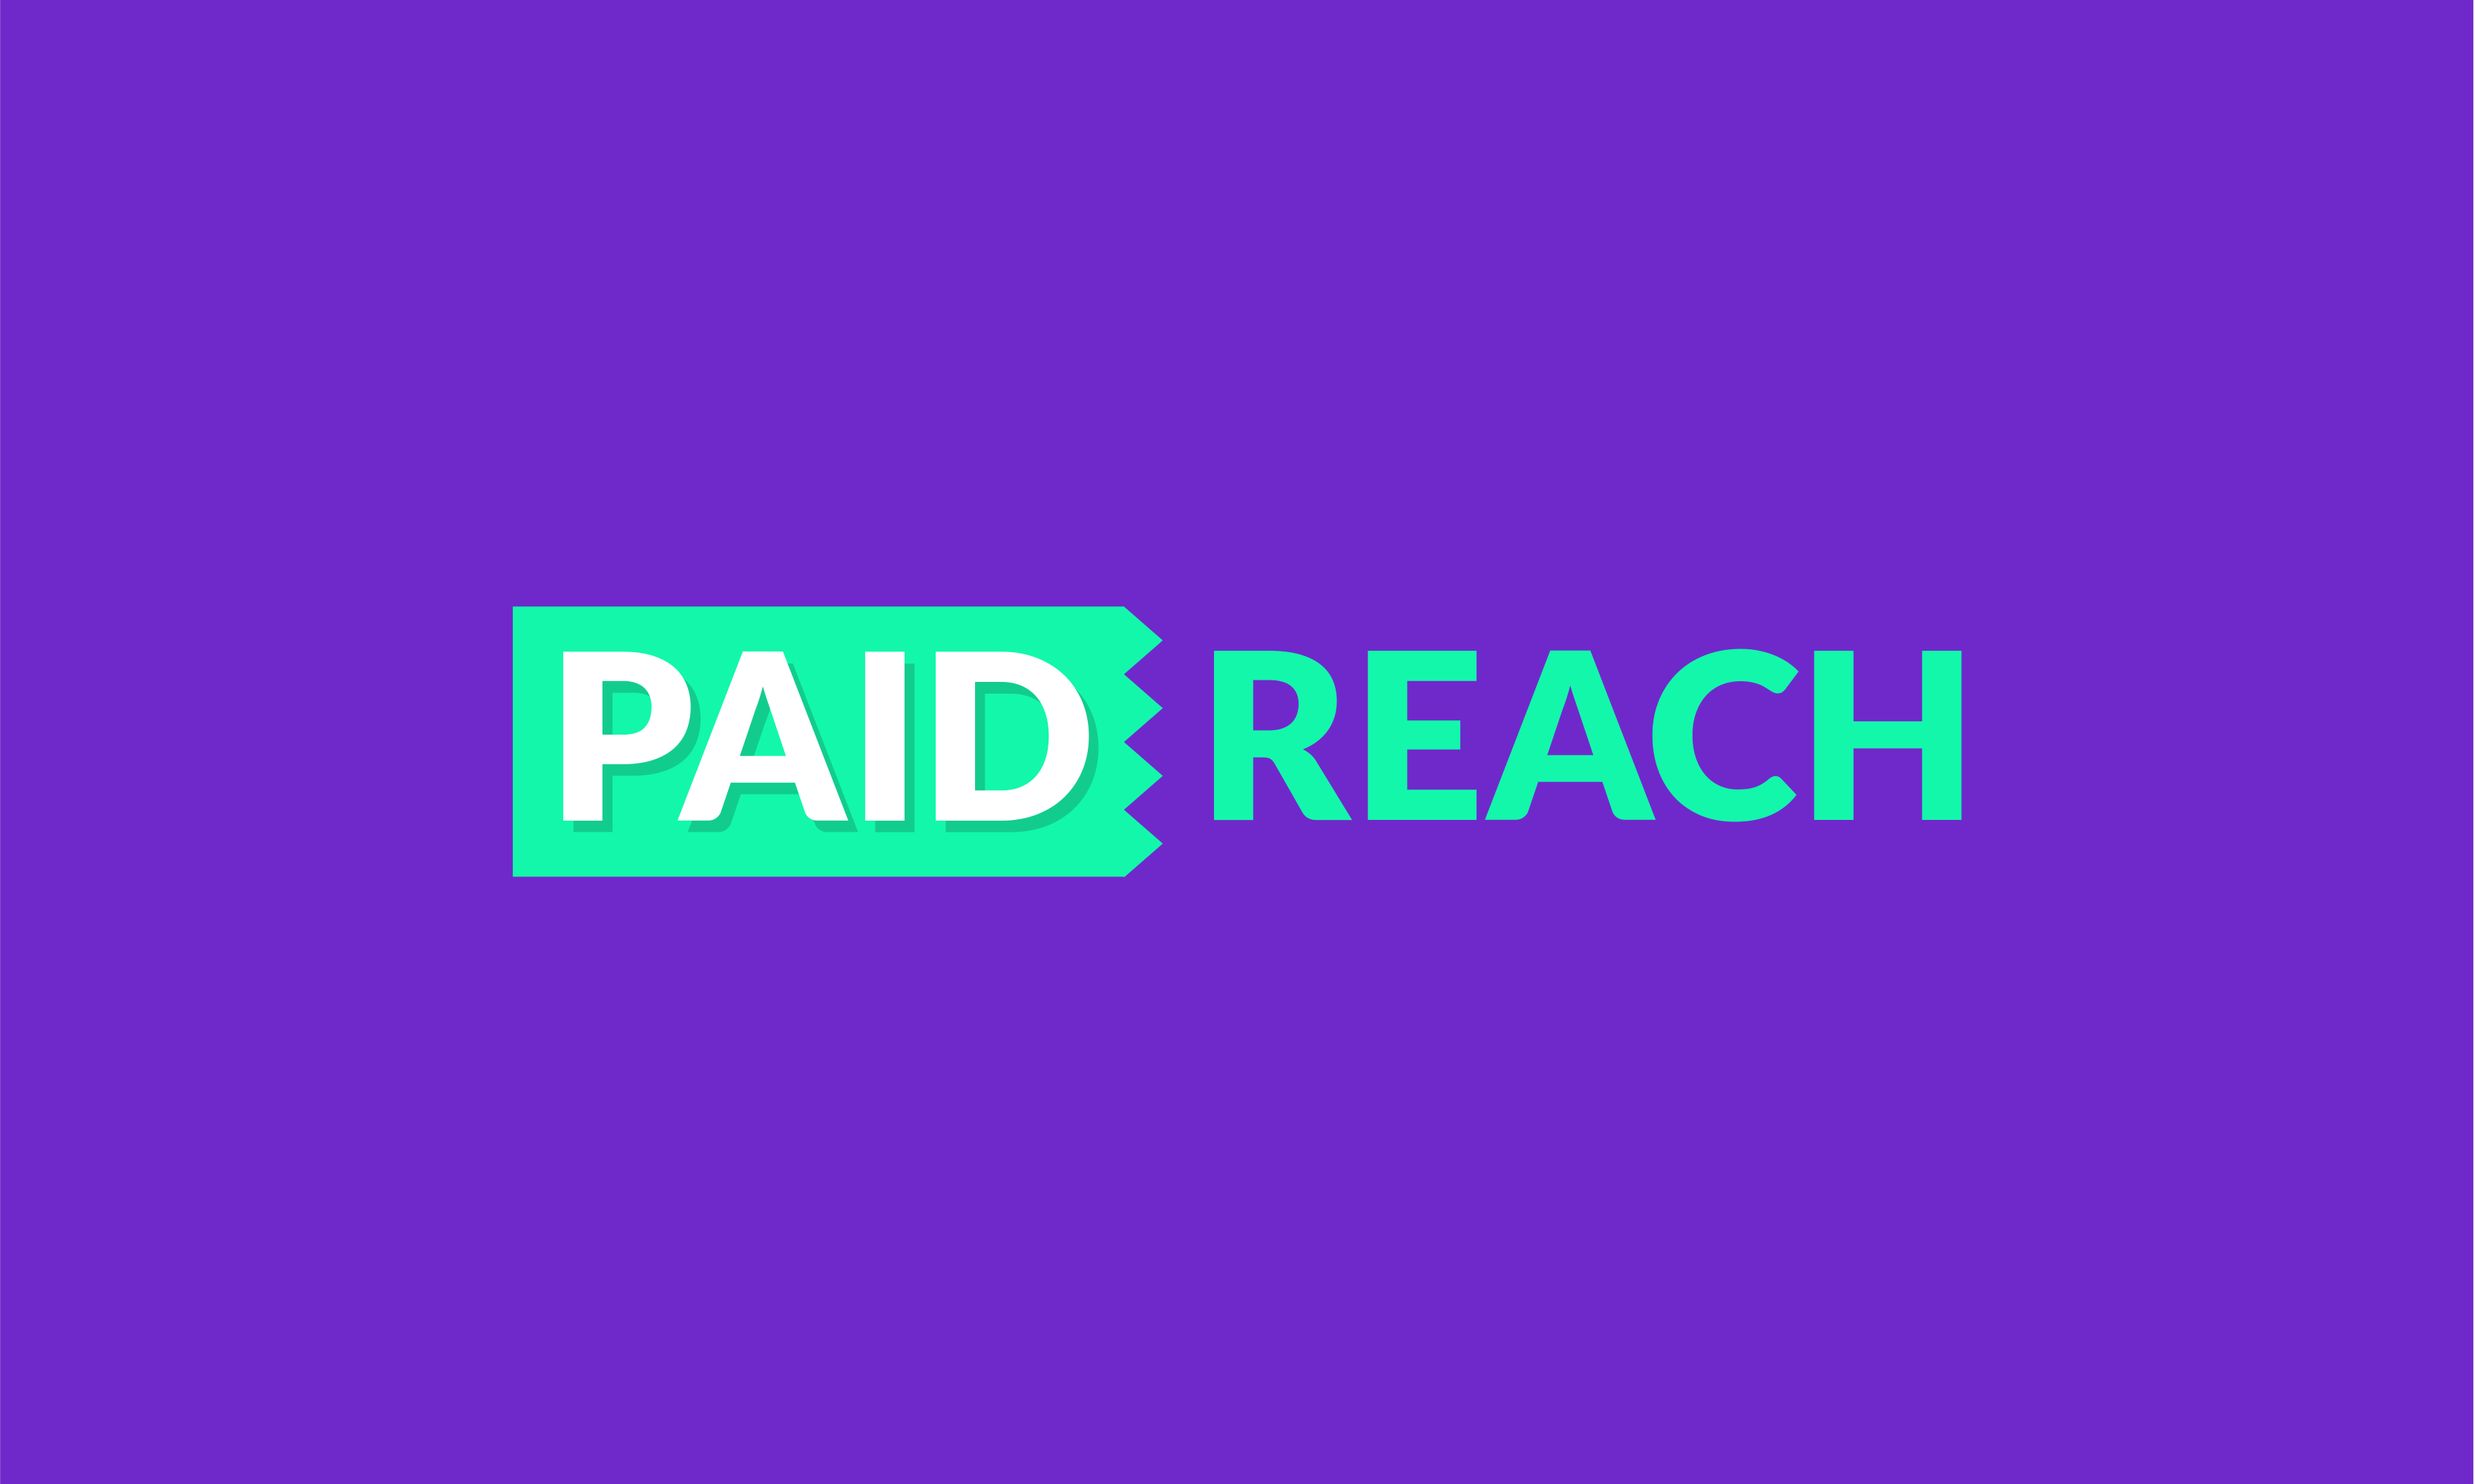 Paidreach - Marketing domain name for sale